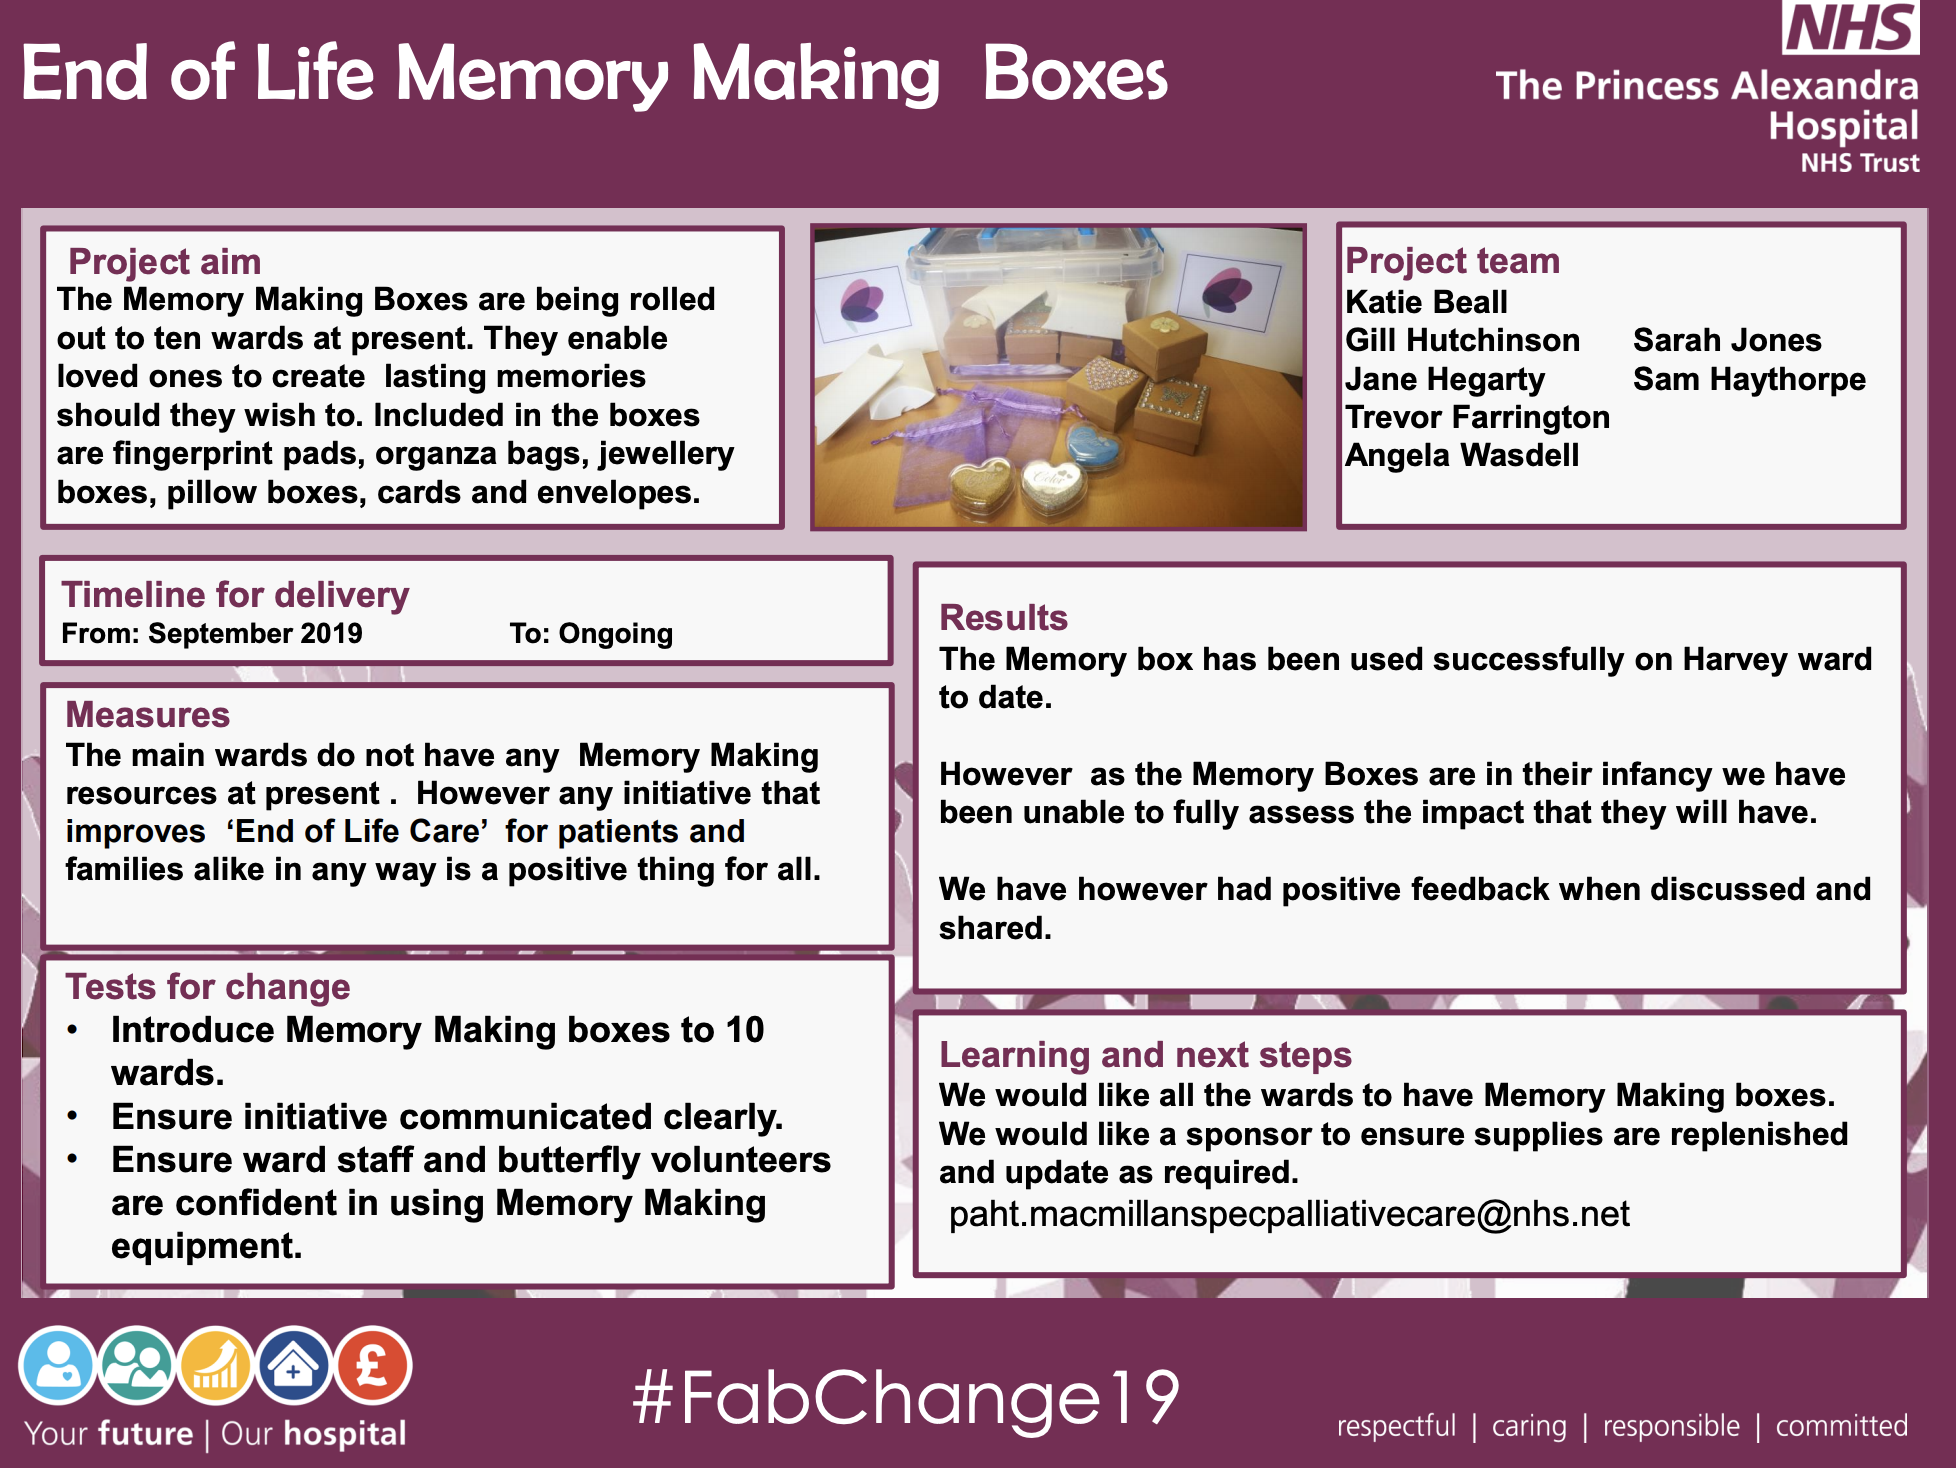 PAHT - End of Life Memory Making Boxes - @QualityFirstPAH featured image